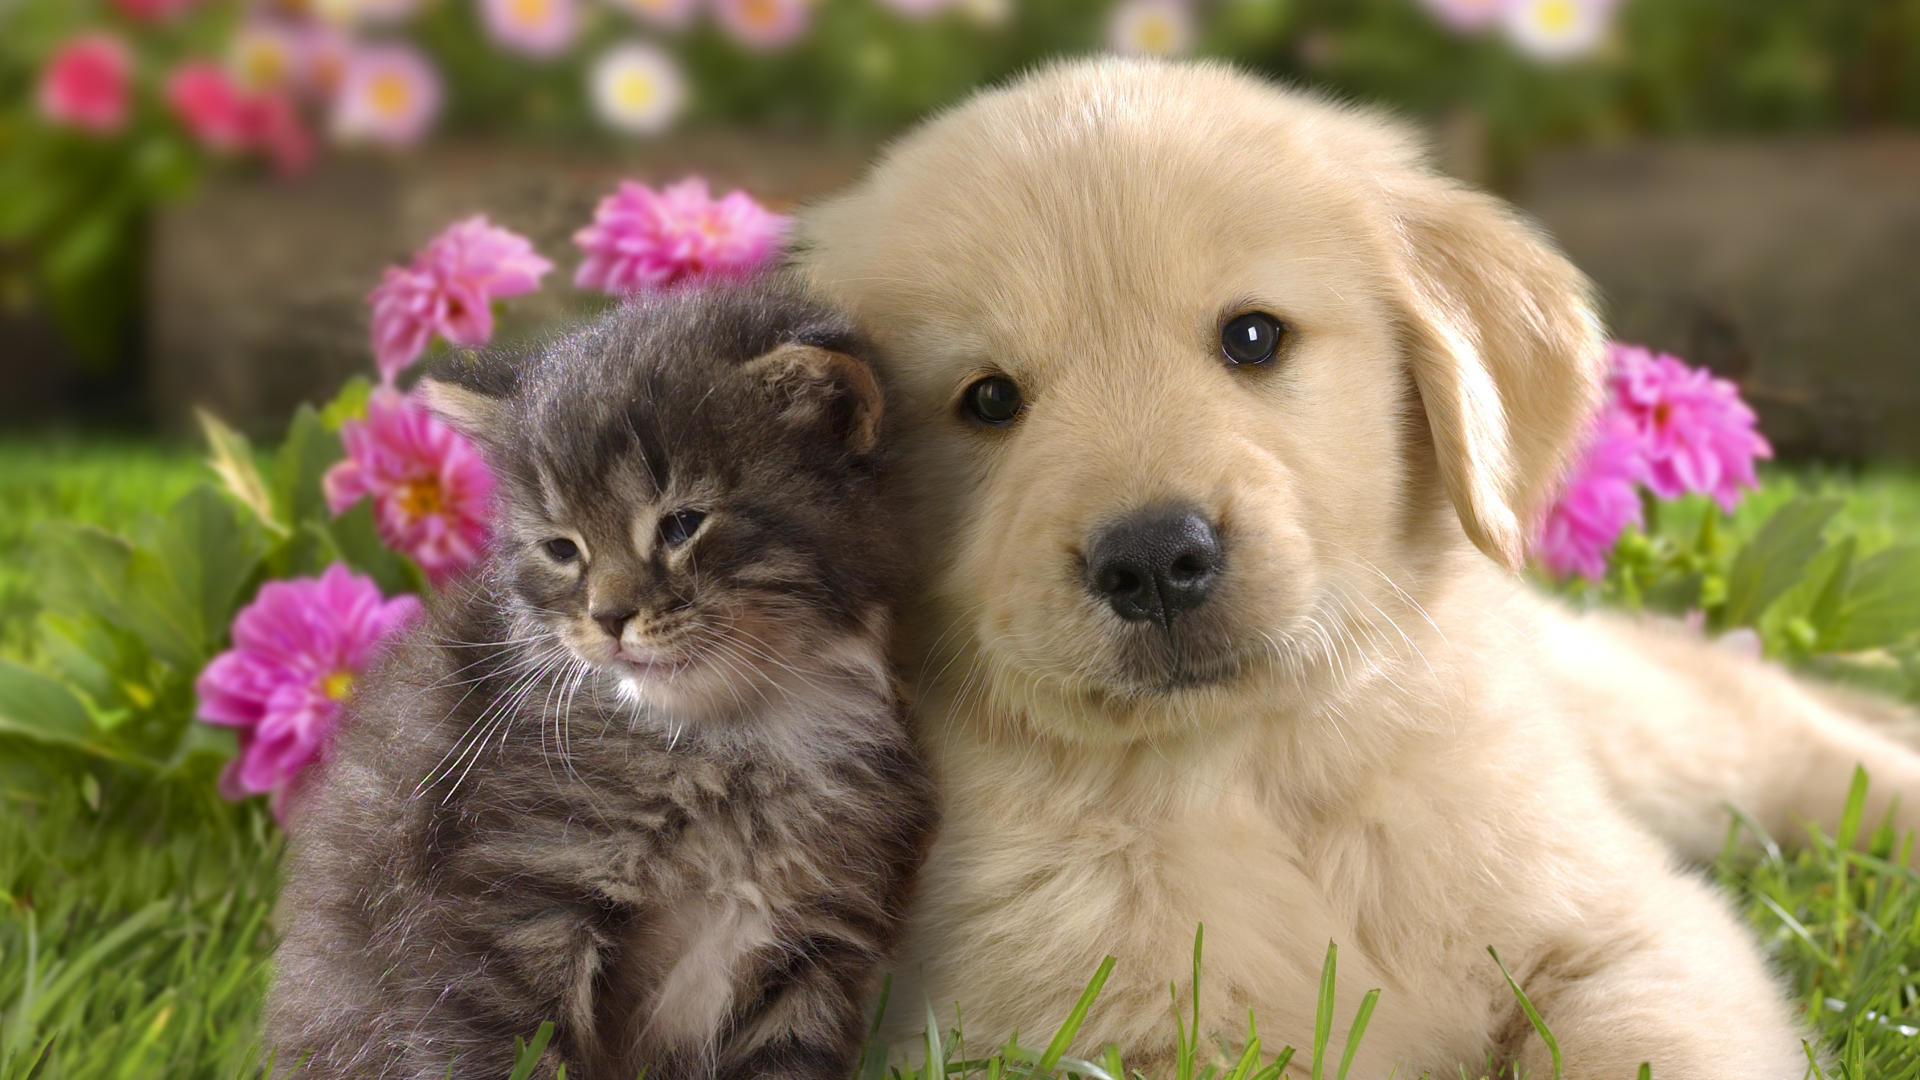 1920x1080 Cute Cats And Kittens And Dogswallpapers Kittens Puppy Cu Cute Dog Kitten  Love Nice O Pisica